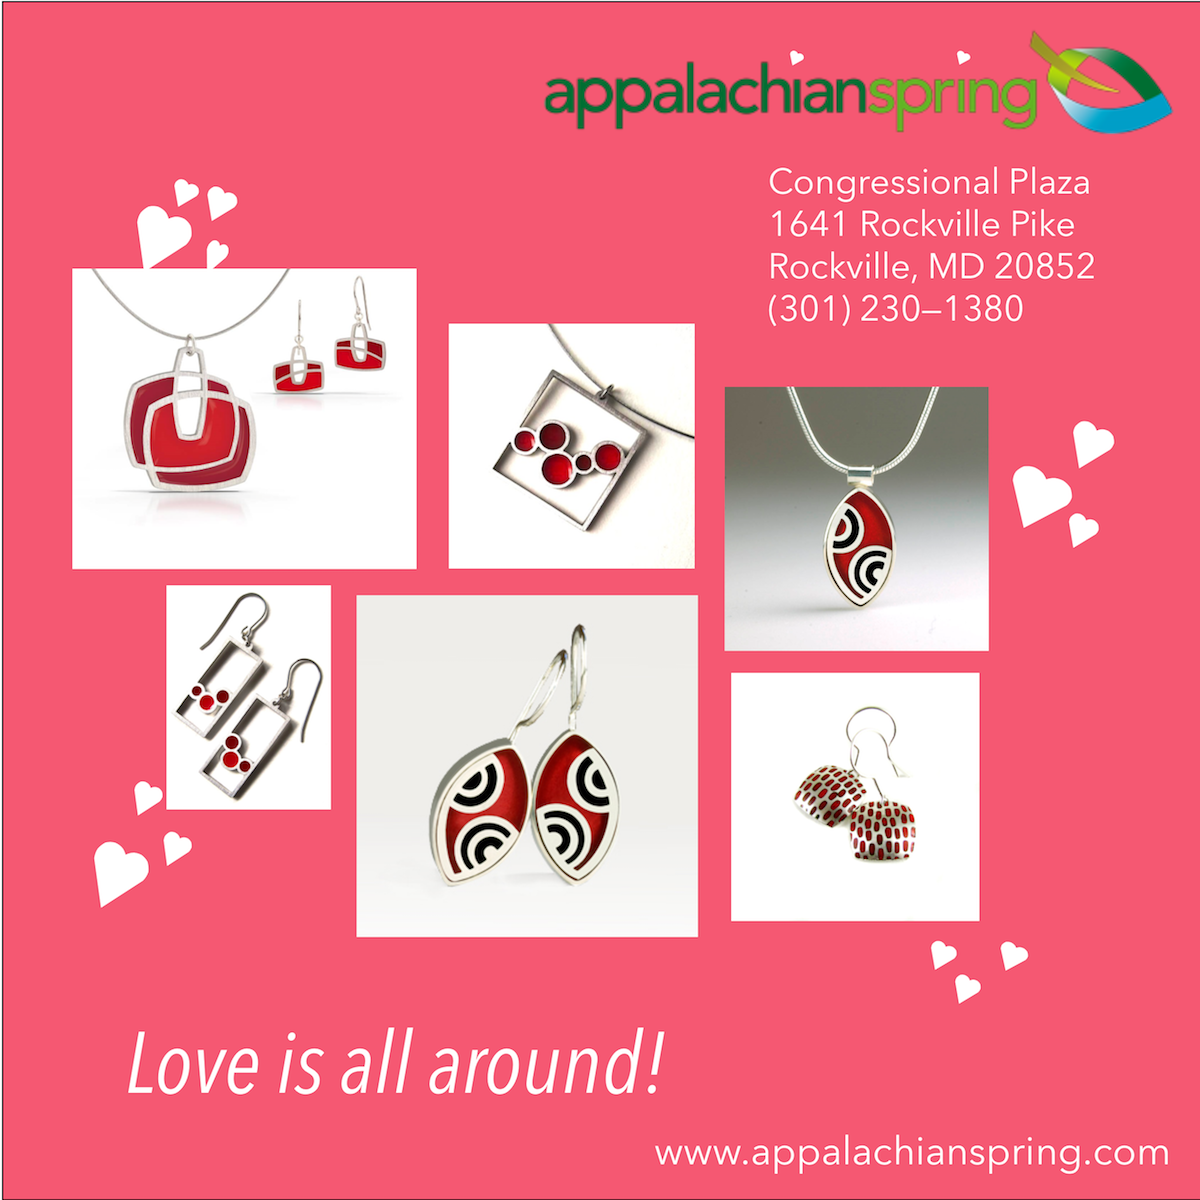 Appalachian Spring at Congressional Plaza: https://www.appalachianspring.com/category.cfm/crafts/jewelry